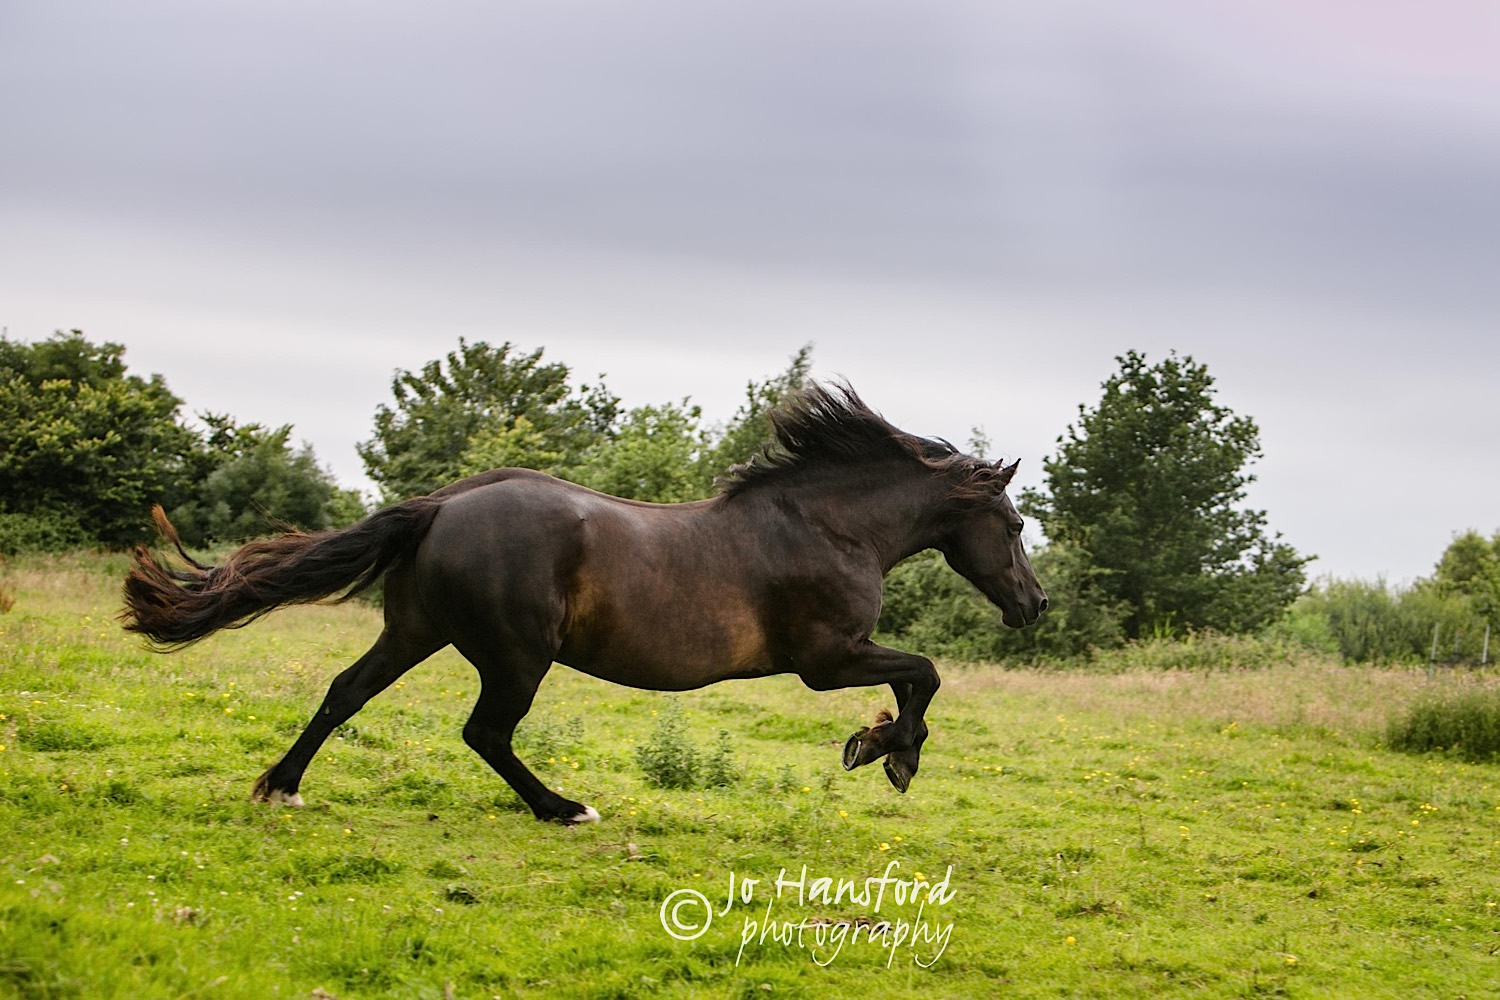 Horse_photography_Gloucestershire_Jo_Hansford_004